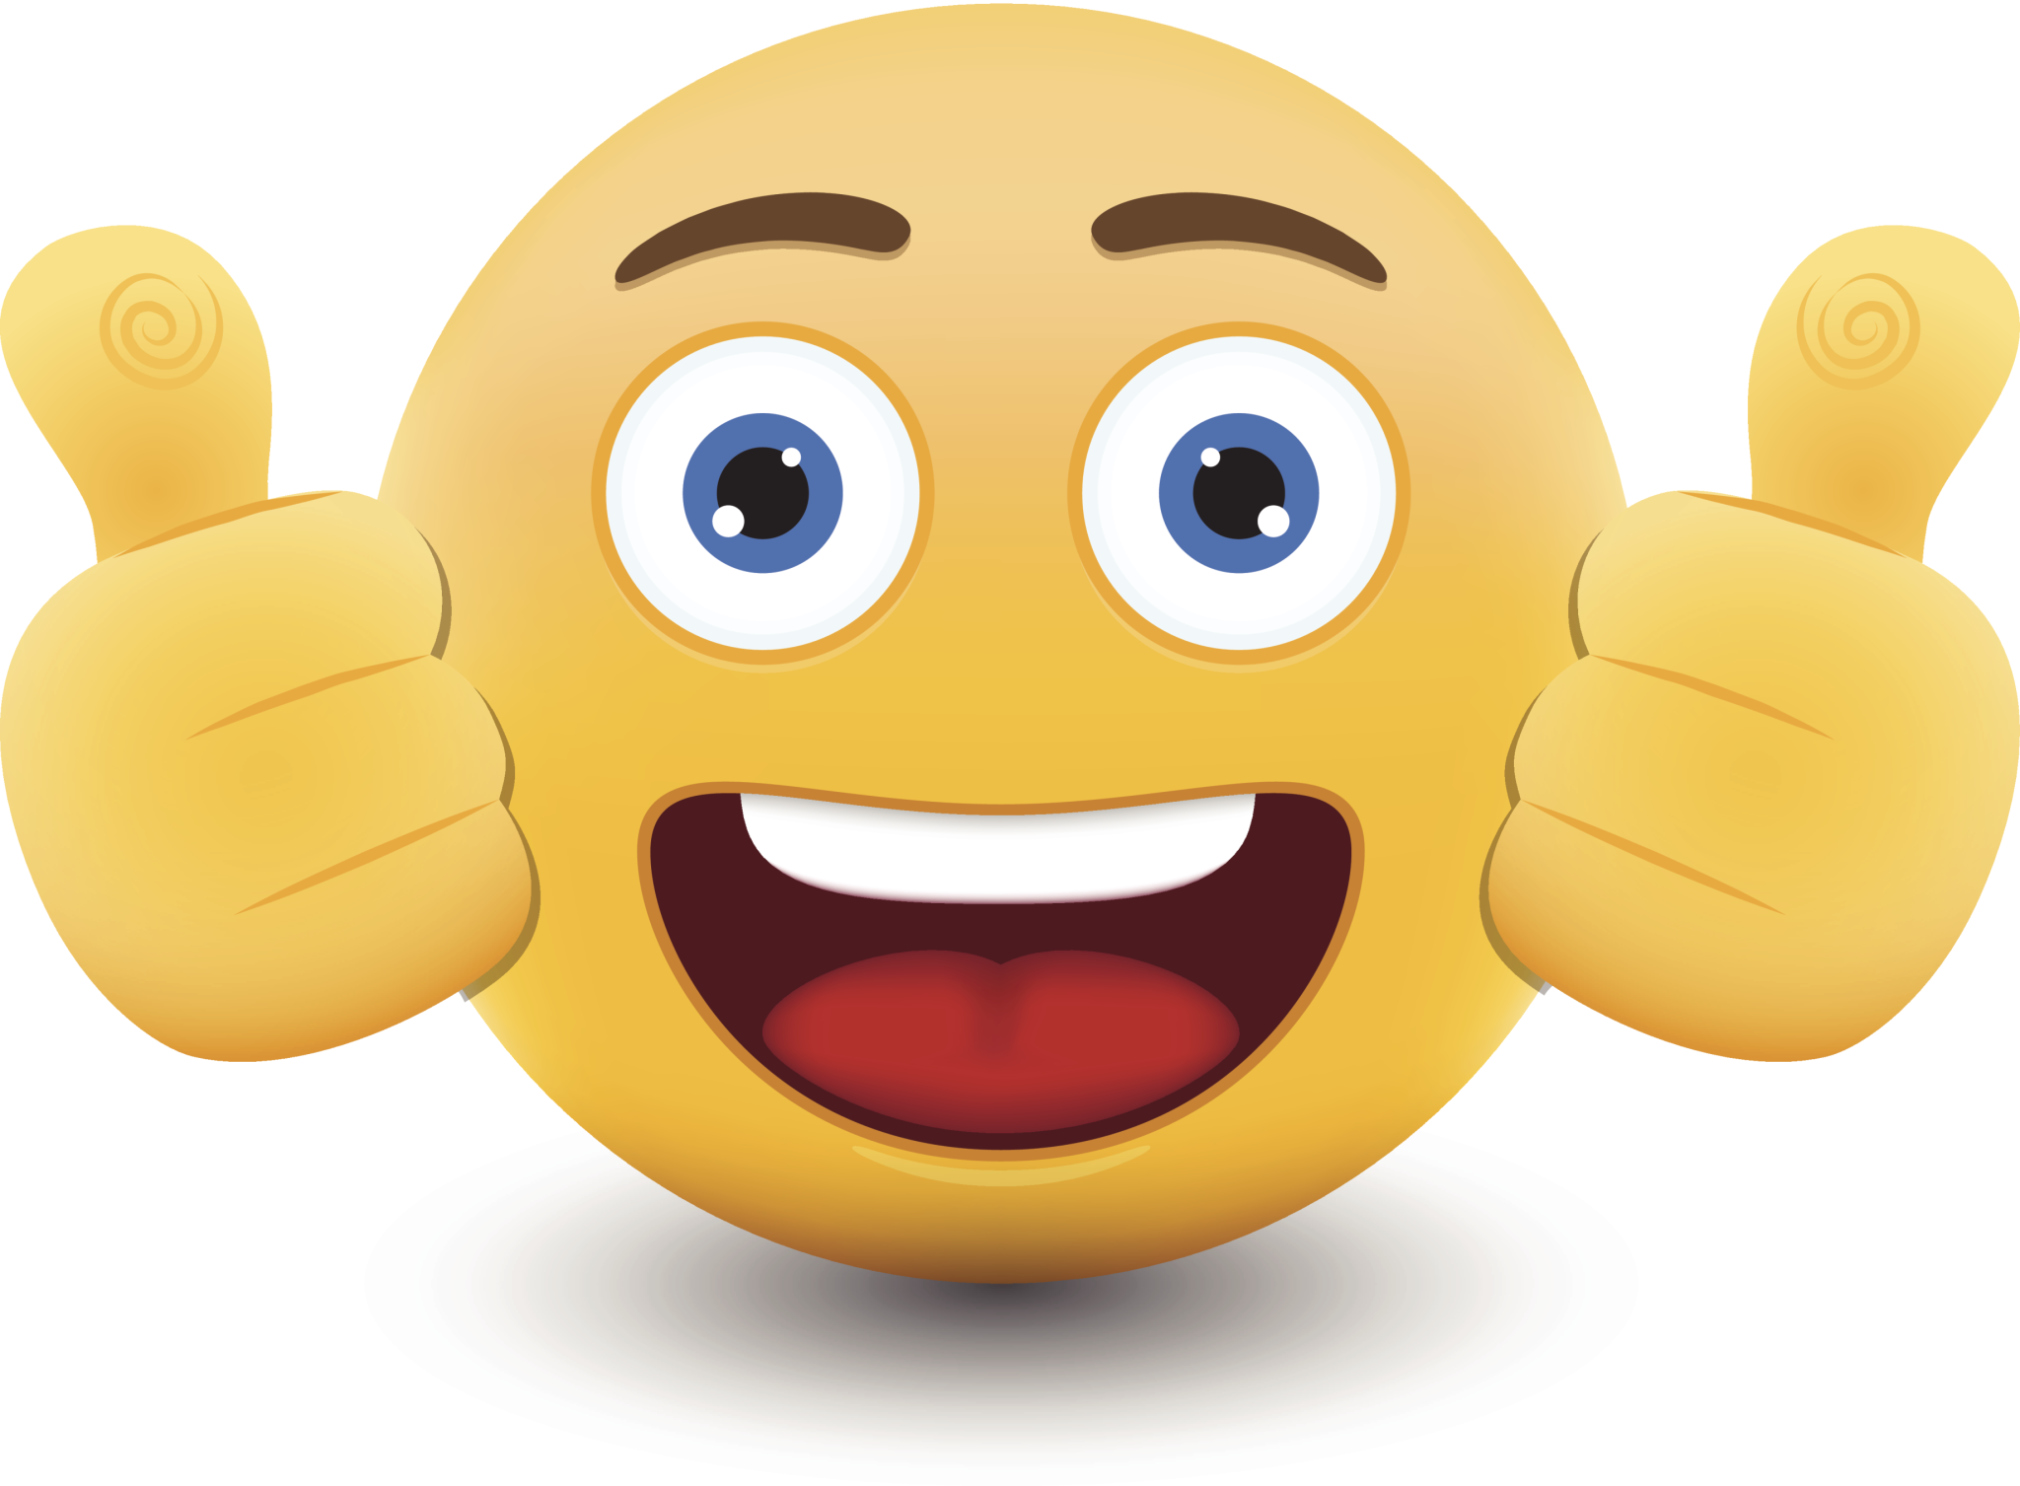 Happy Face Emoji Images - Reverse Search